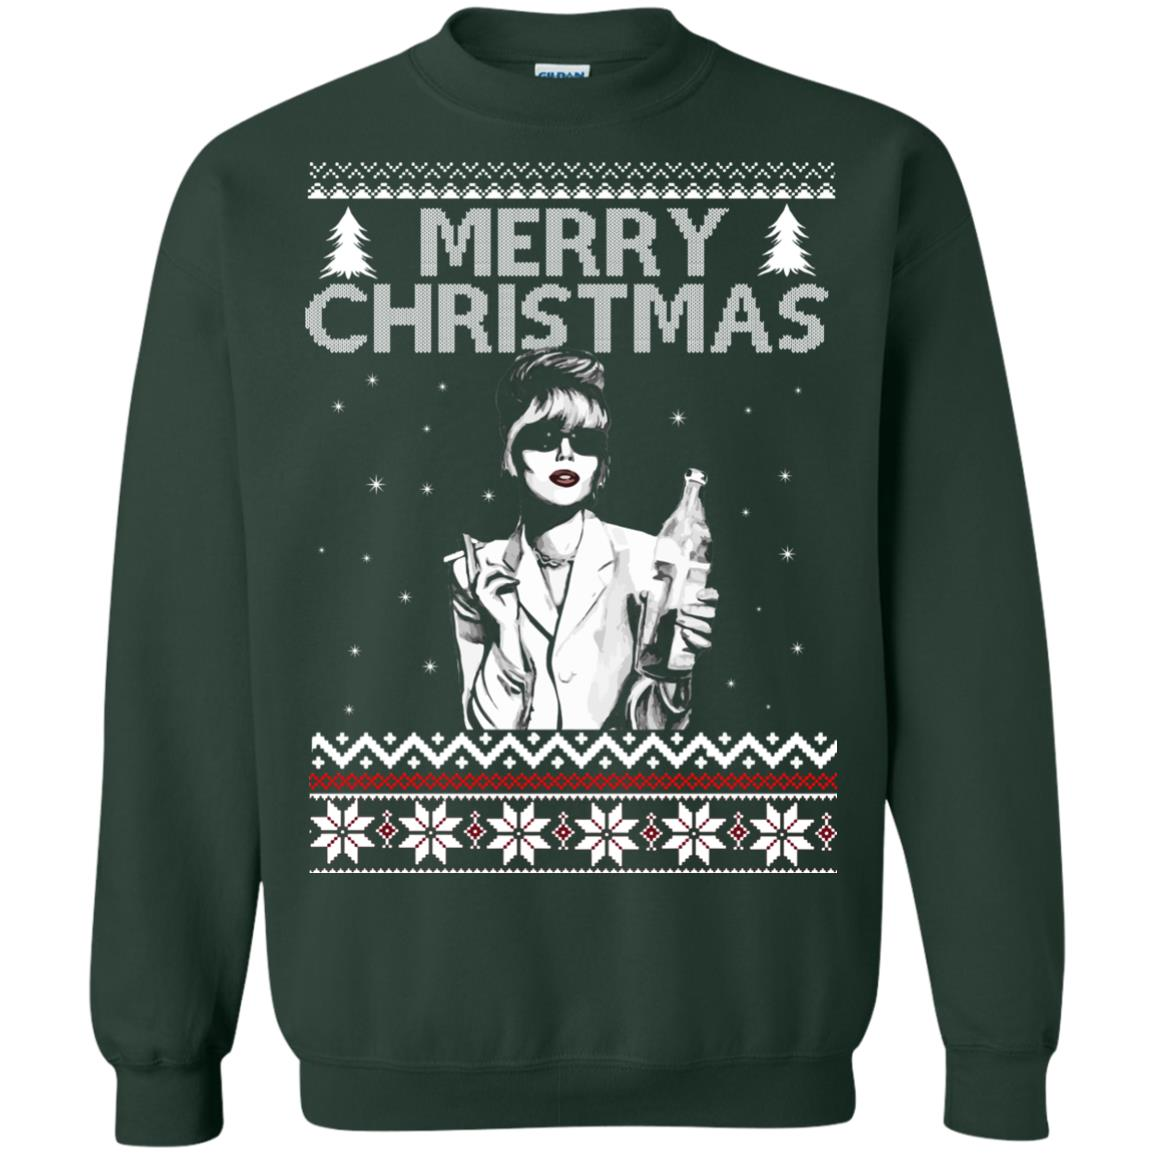 merry christmas patsy stone ugly sweater hoodie